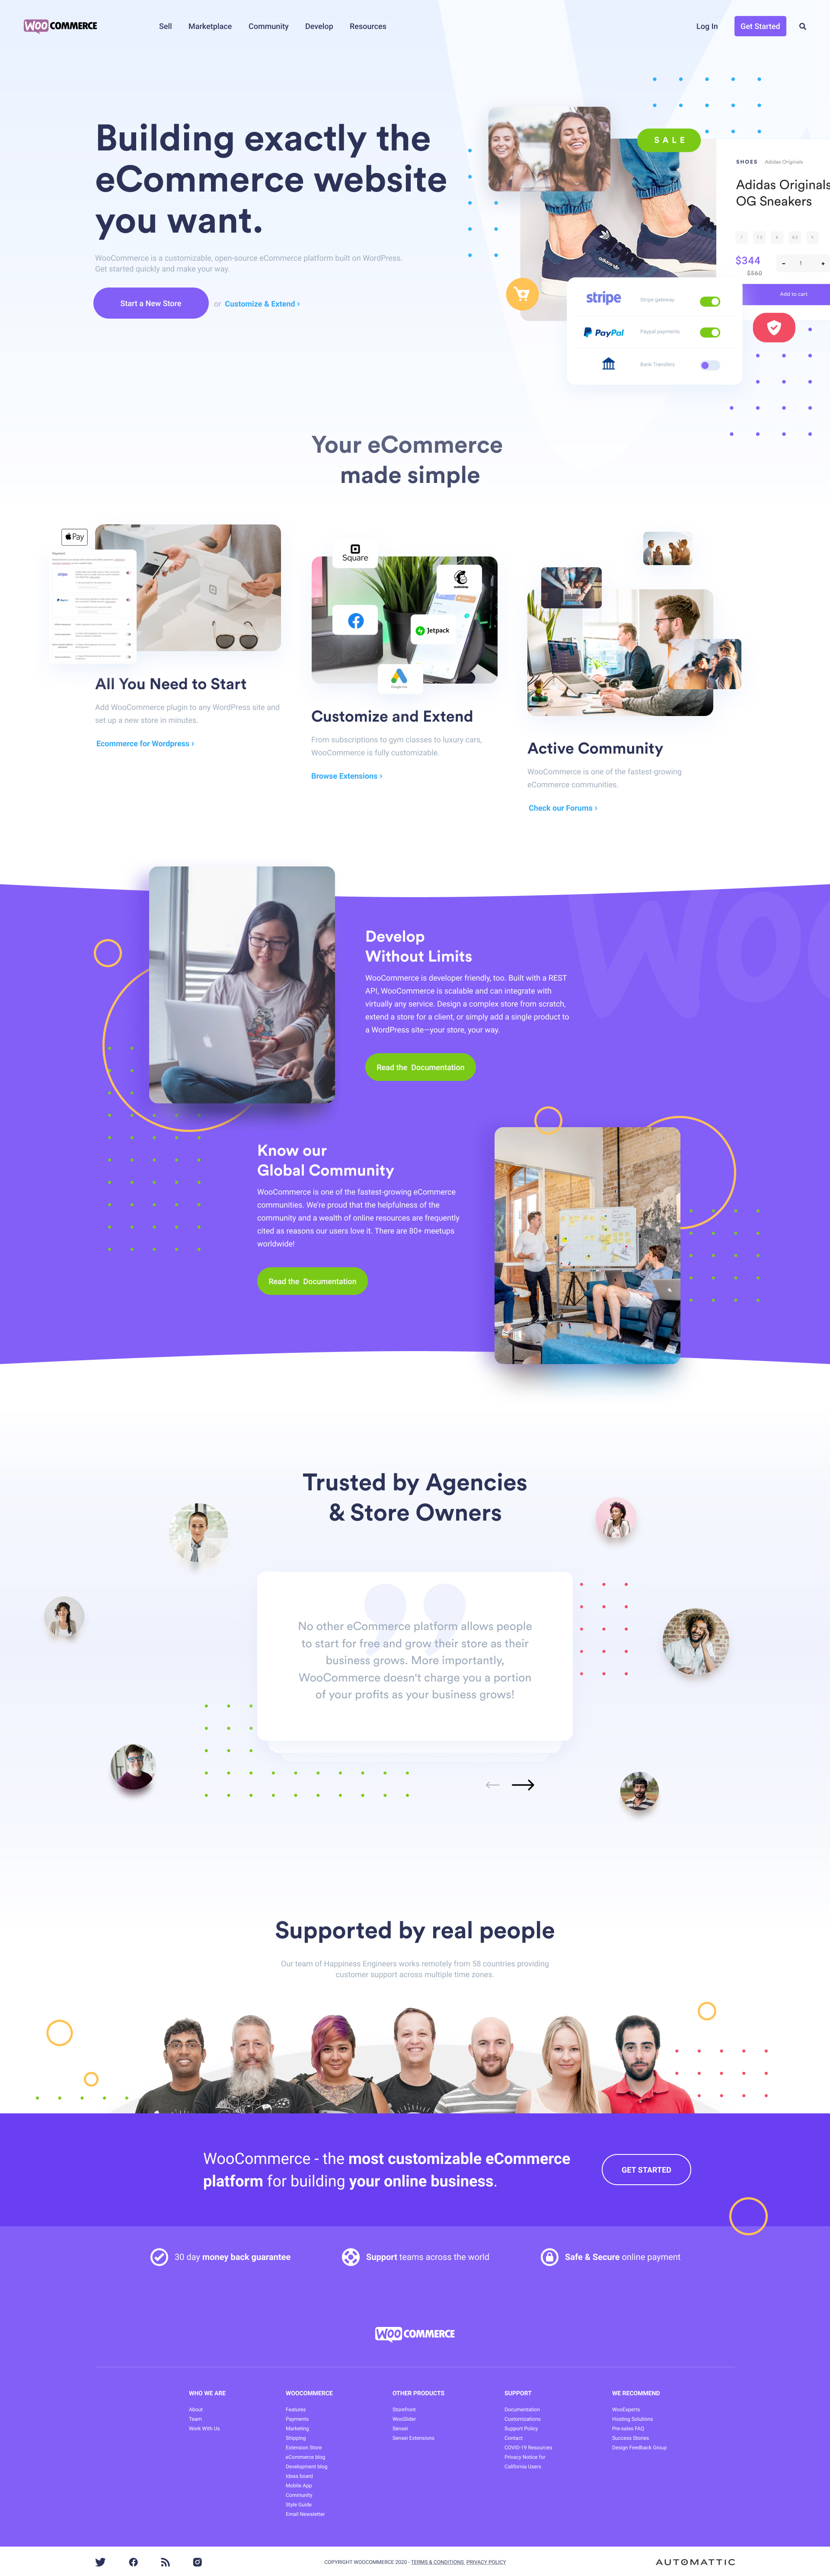 Woo Landing Page - Elegant and clean landing page design for WooCommerce. Modern & clean look.